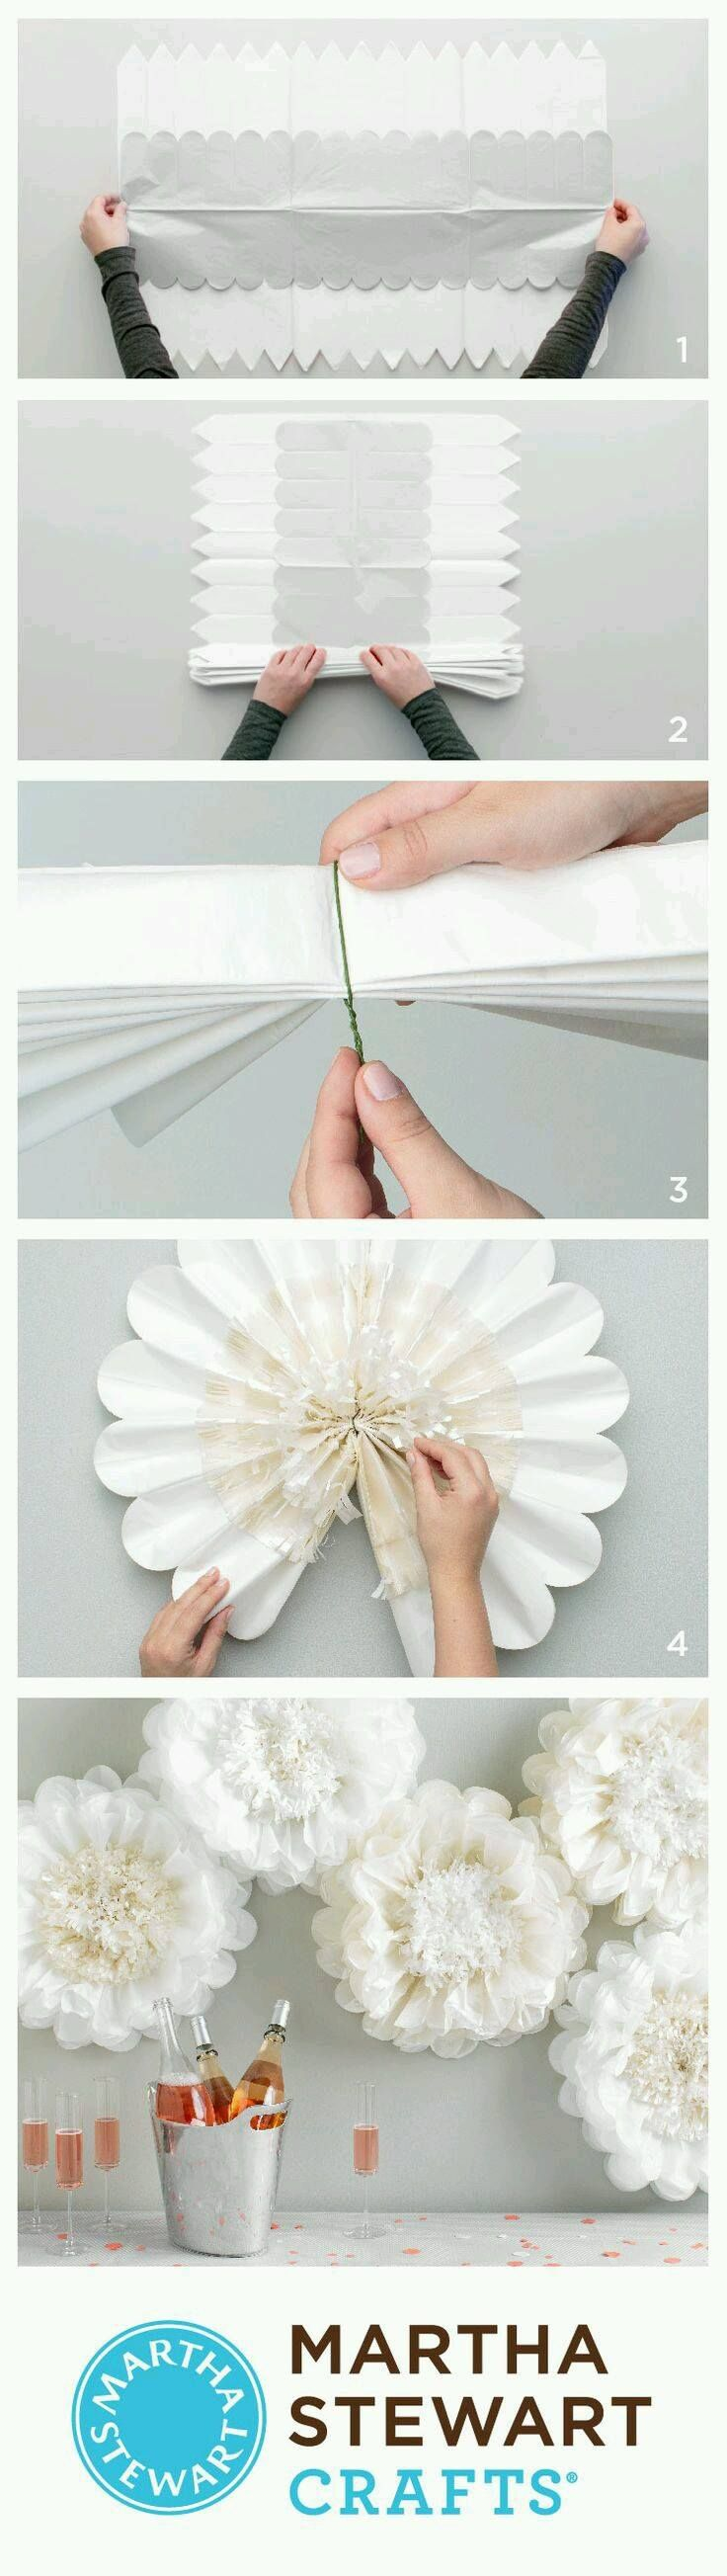 Tissue paper or crepe paper  Decorations  Pinterest  Crepe paper